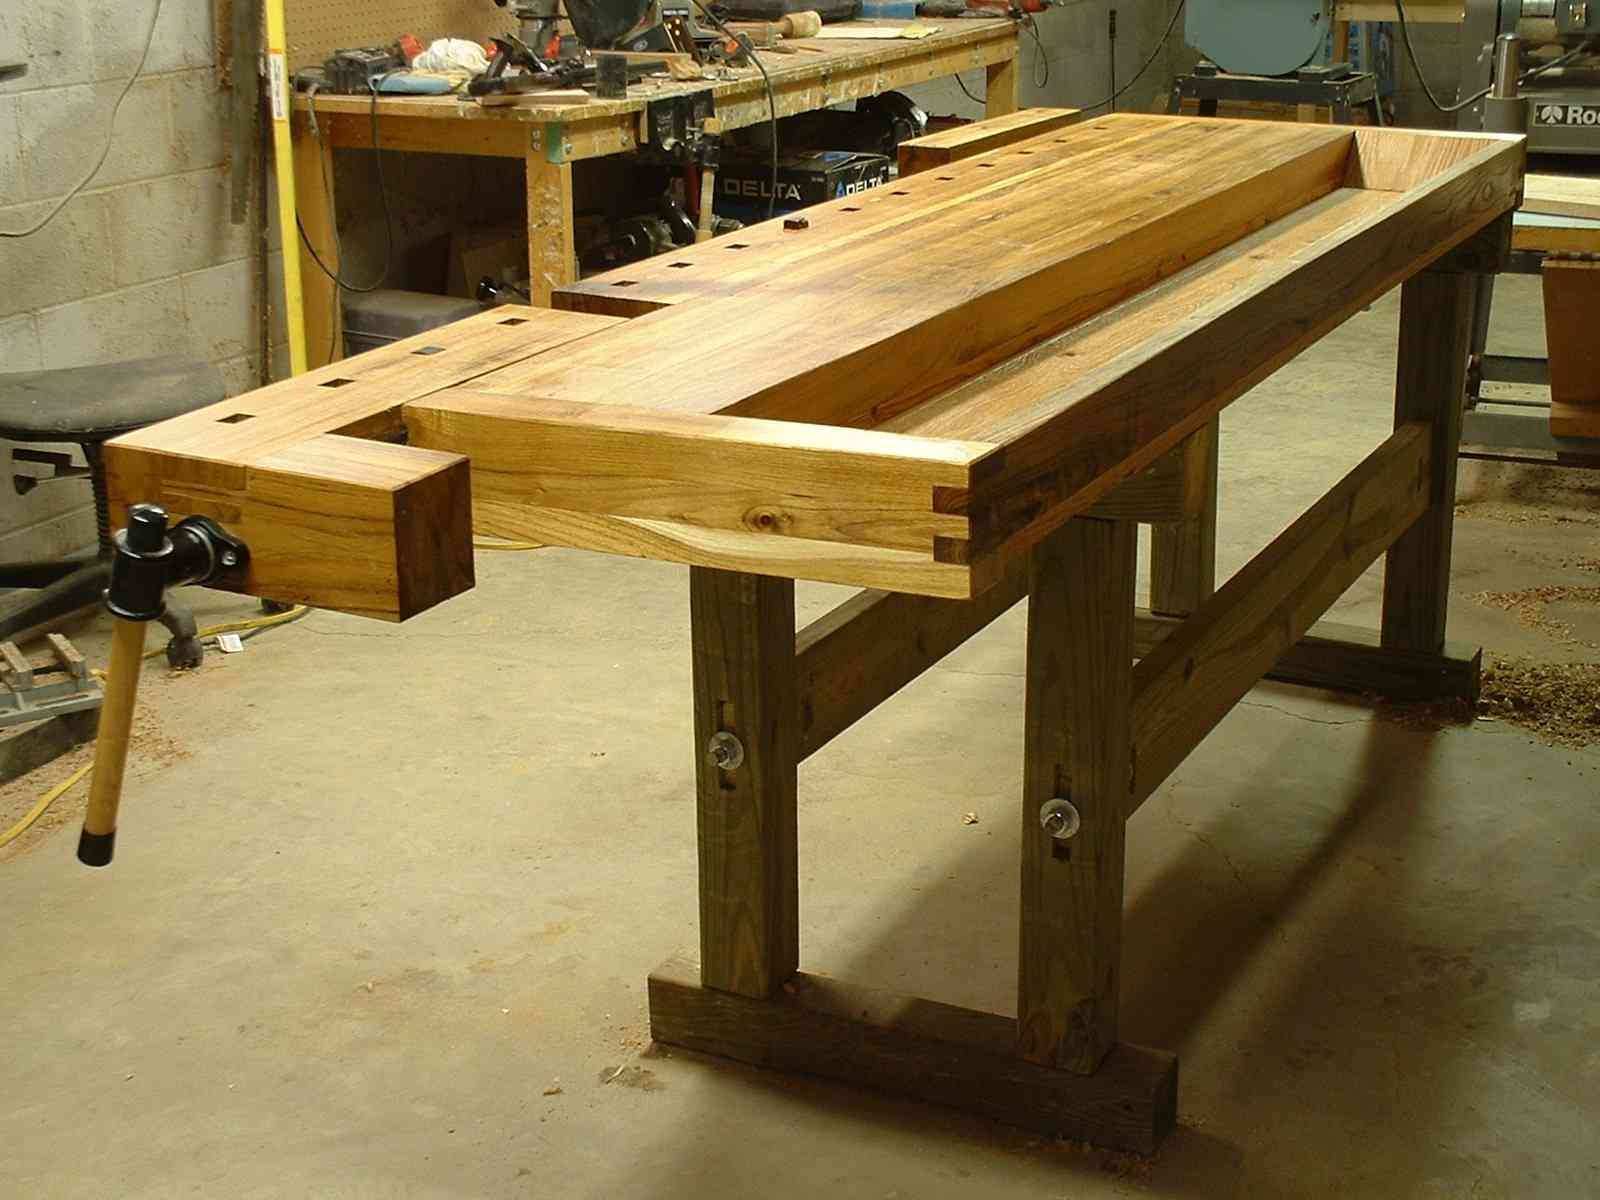 Peachy European Cabinet Makers Workbench In 2019 Woodworking Gmtry Best Dining Table And Chair Ideas Images Gmtryco